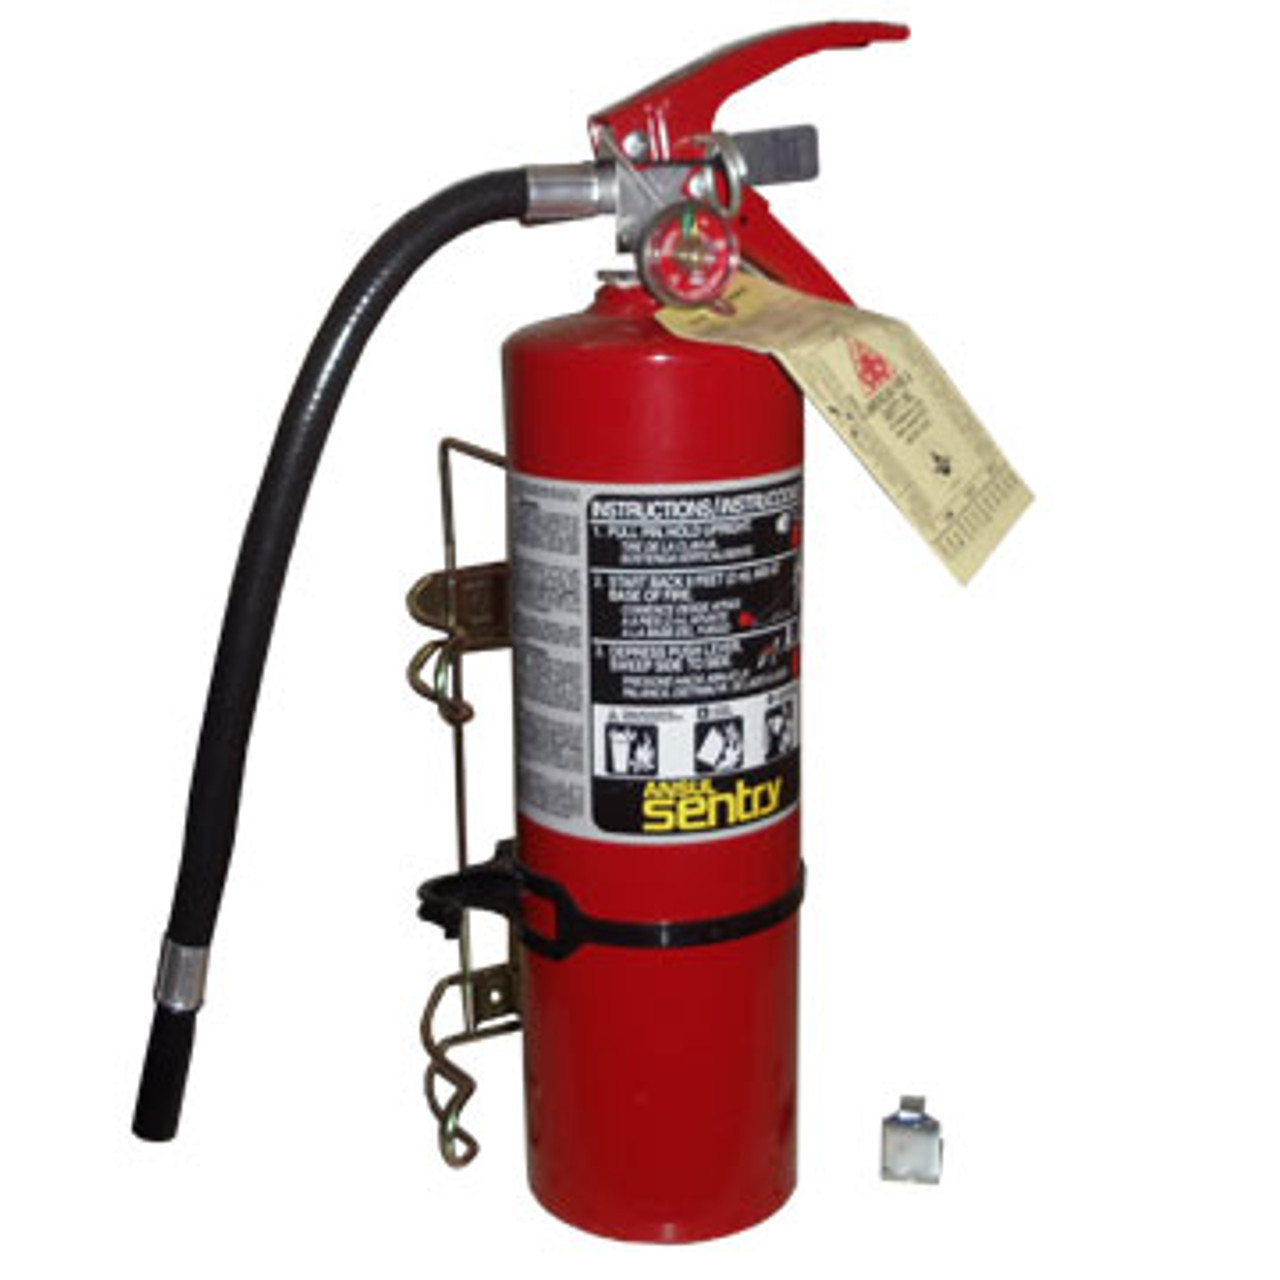 2 lb and 5 lb fire extinguisher